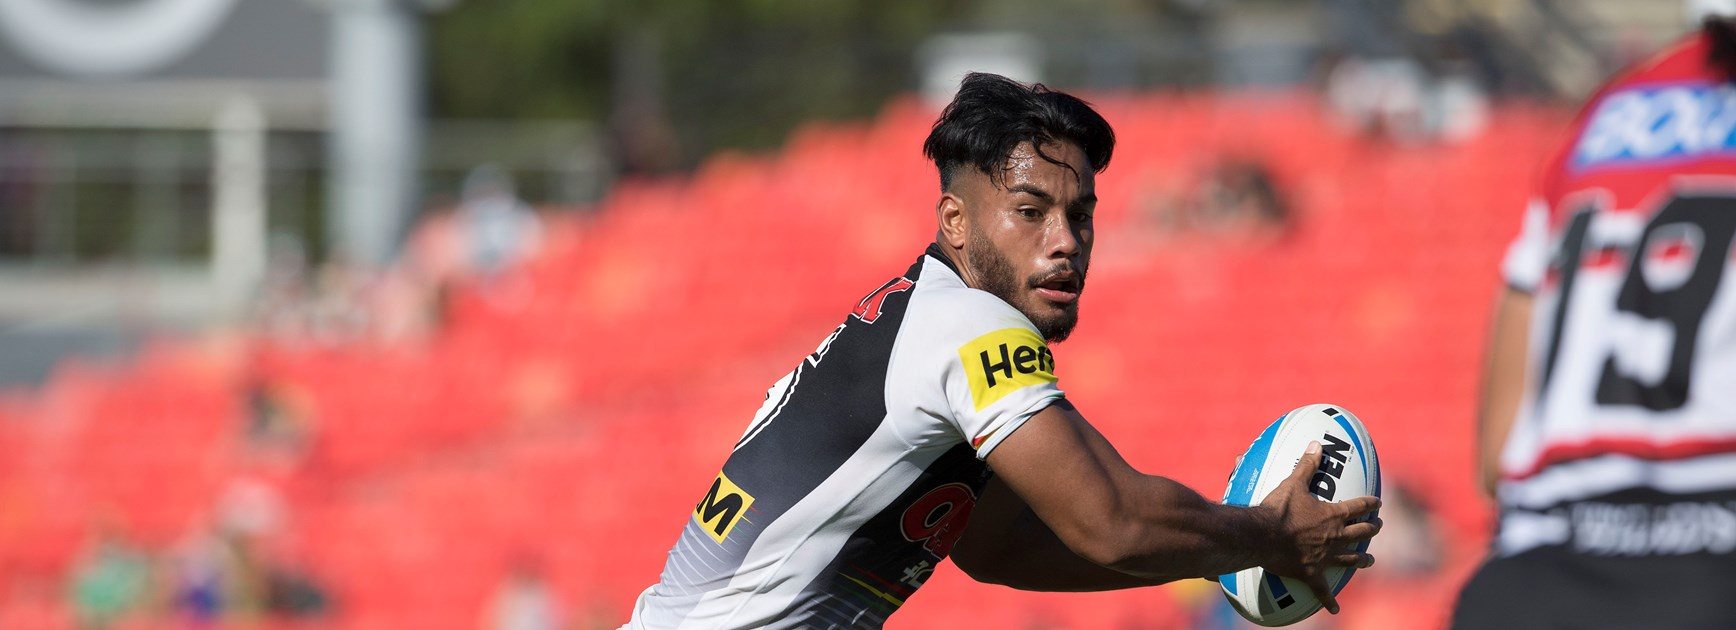 Panthers rookie Crichton settled ahead of NRL debut